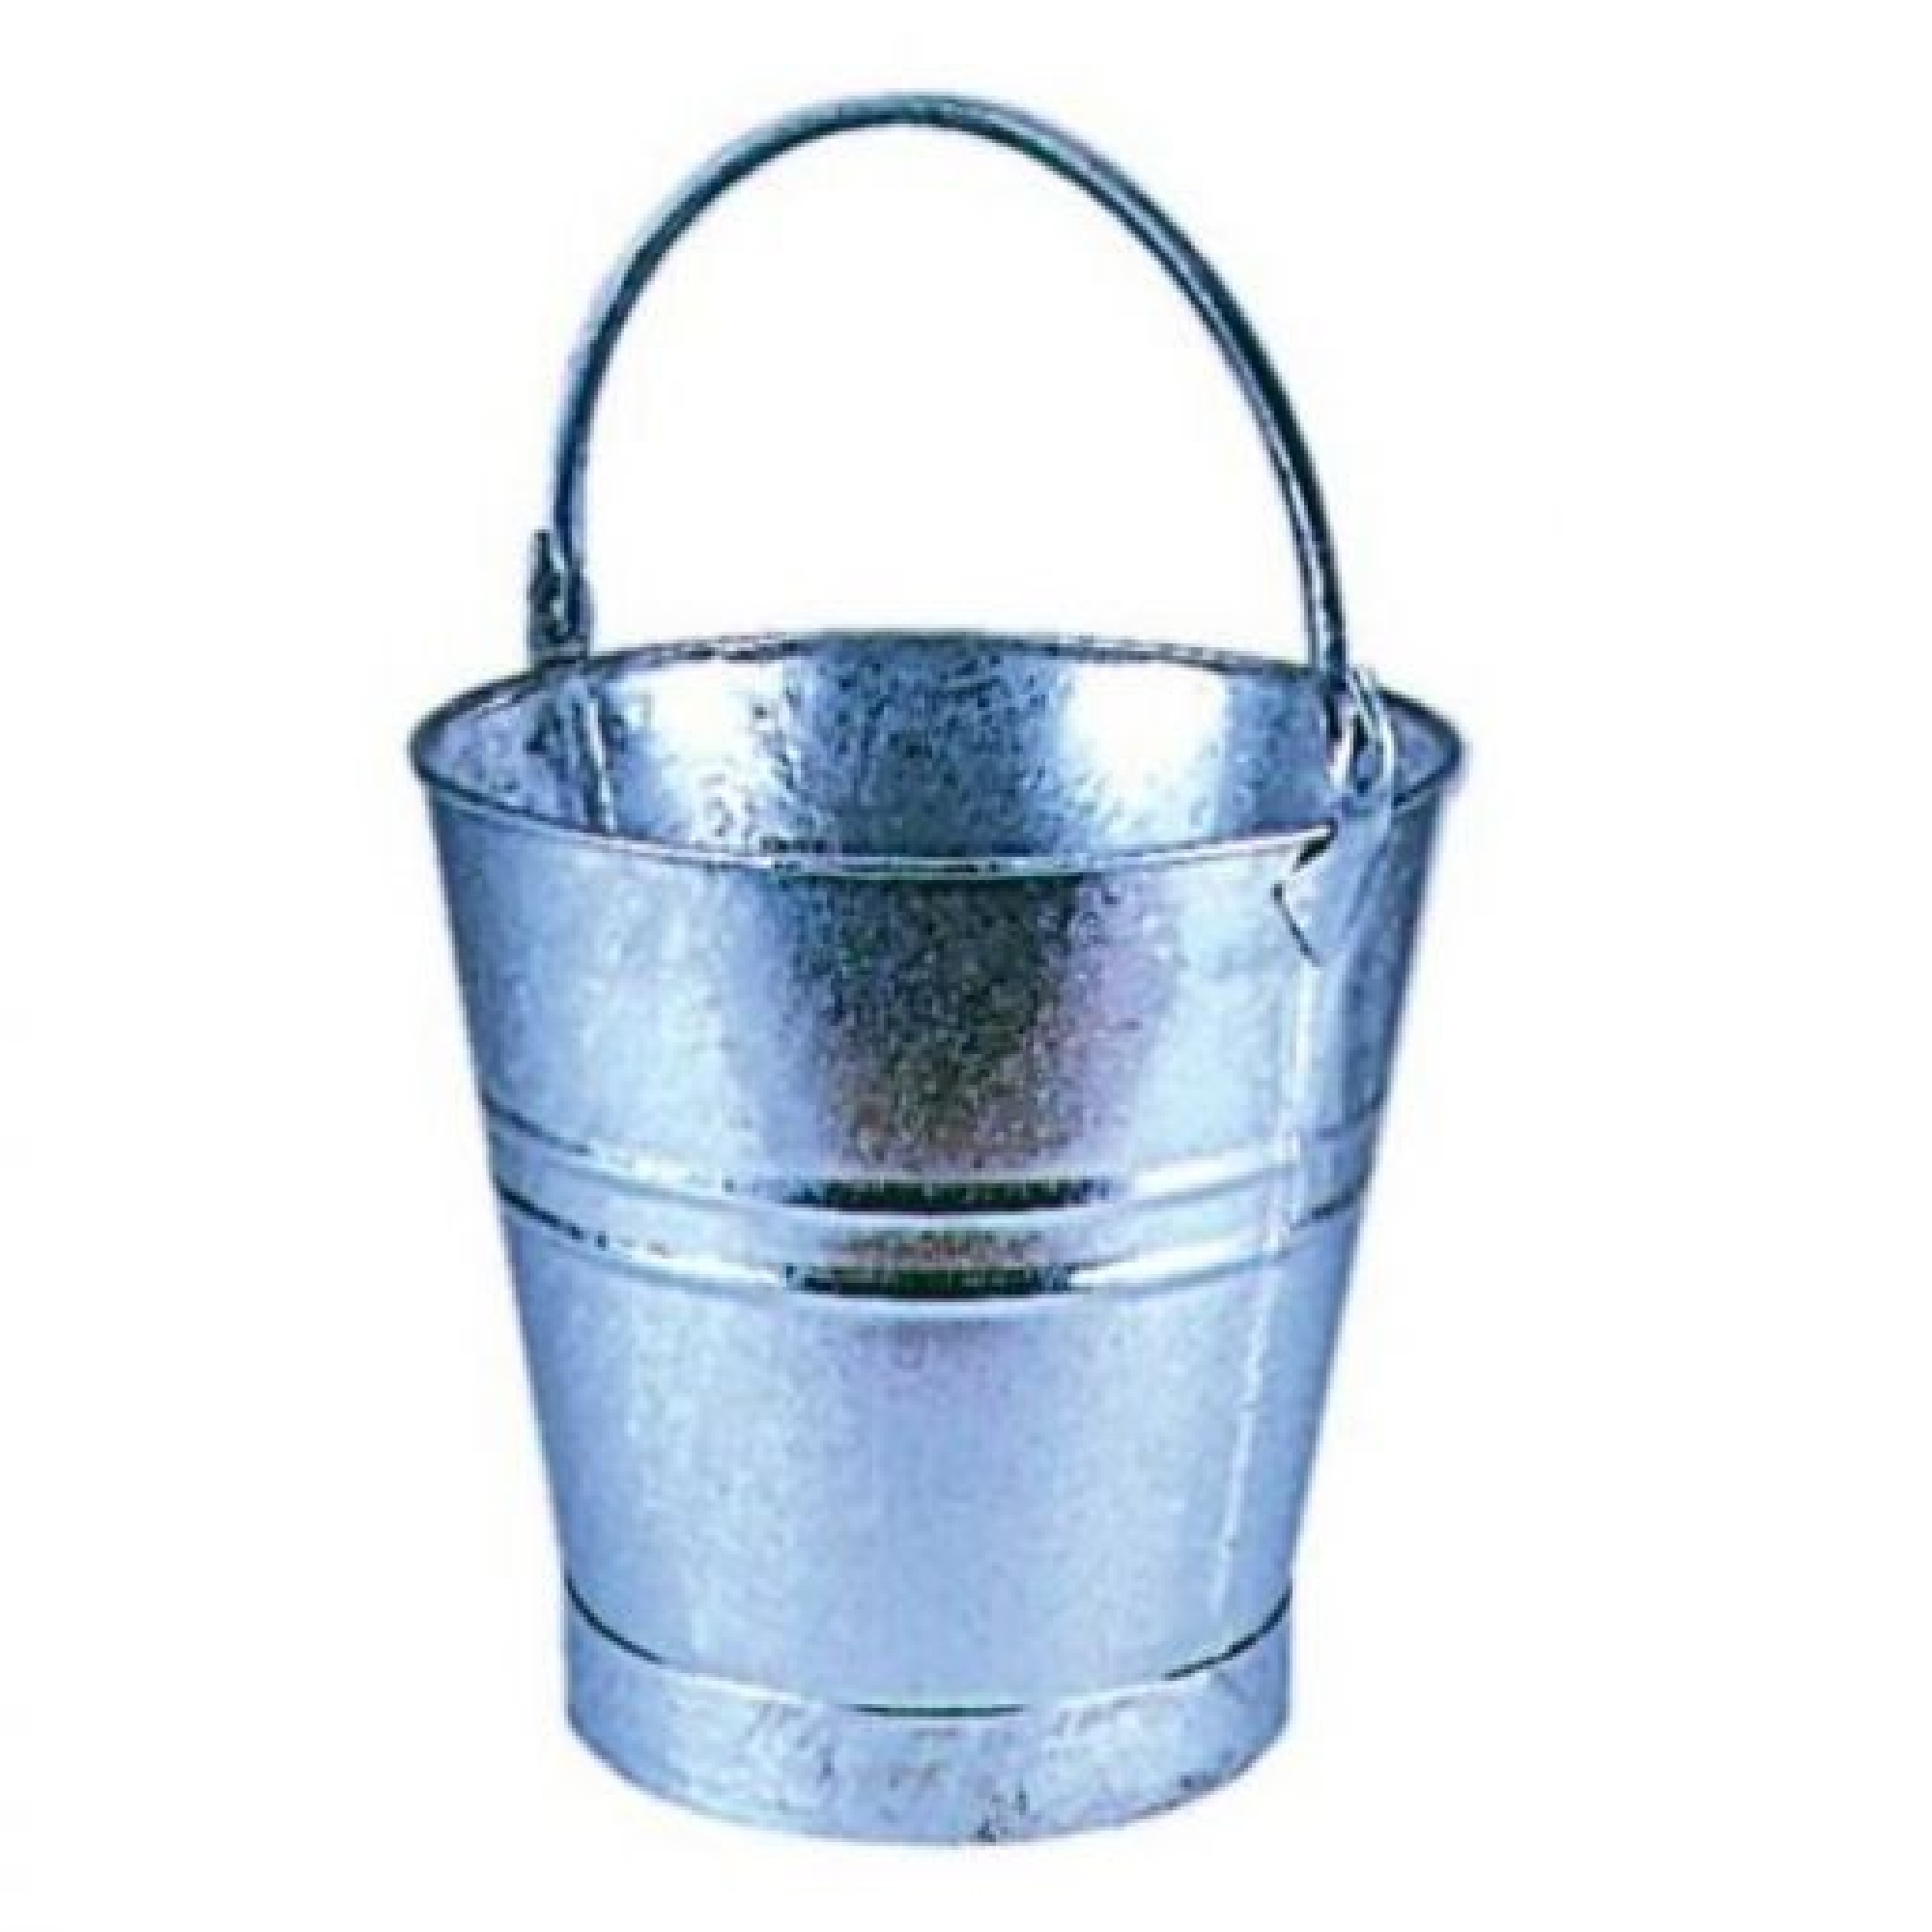 "Heavy duty galvanised steel bucket with 12"" diameter and handle on a white background"